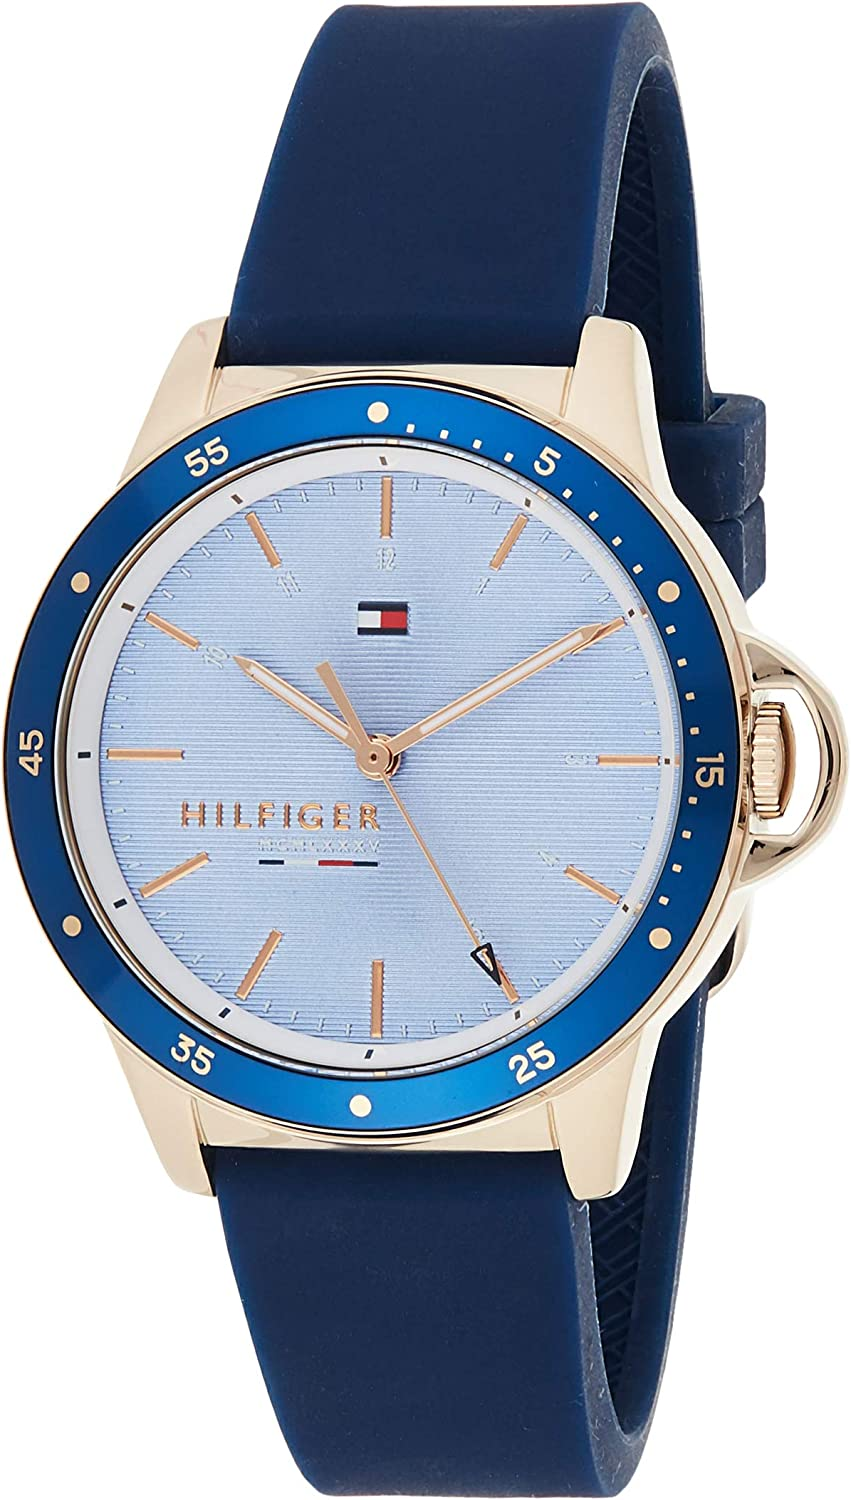 Tommy Hilfiger Women's Stainless Steel Quartz Watch with Silicone Strap, Blue, 17 (Model: 1782027)